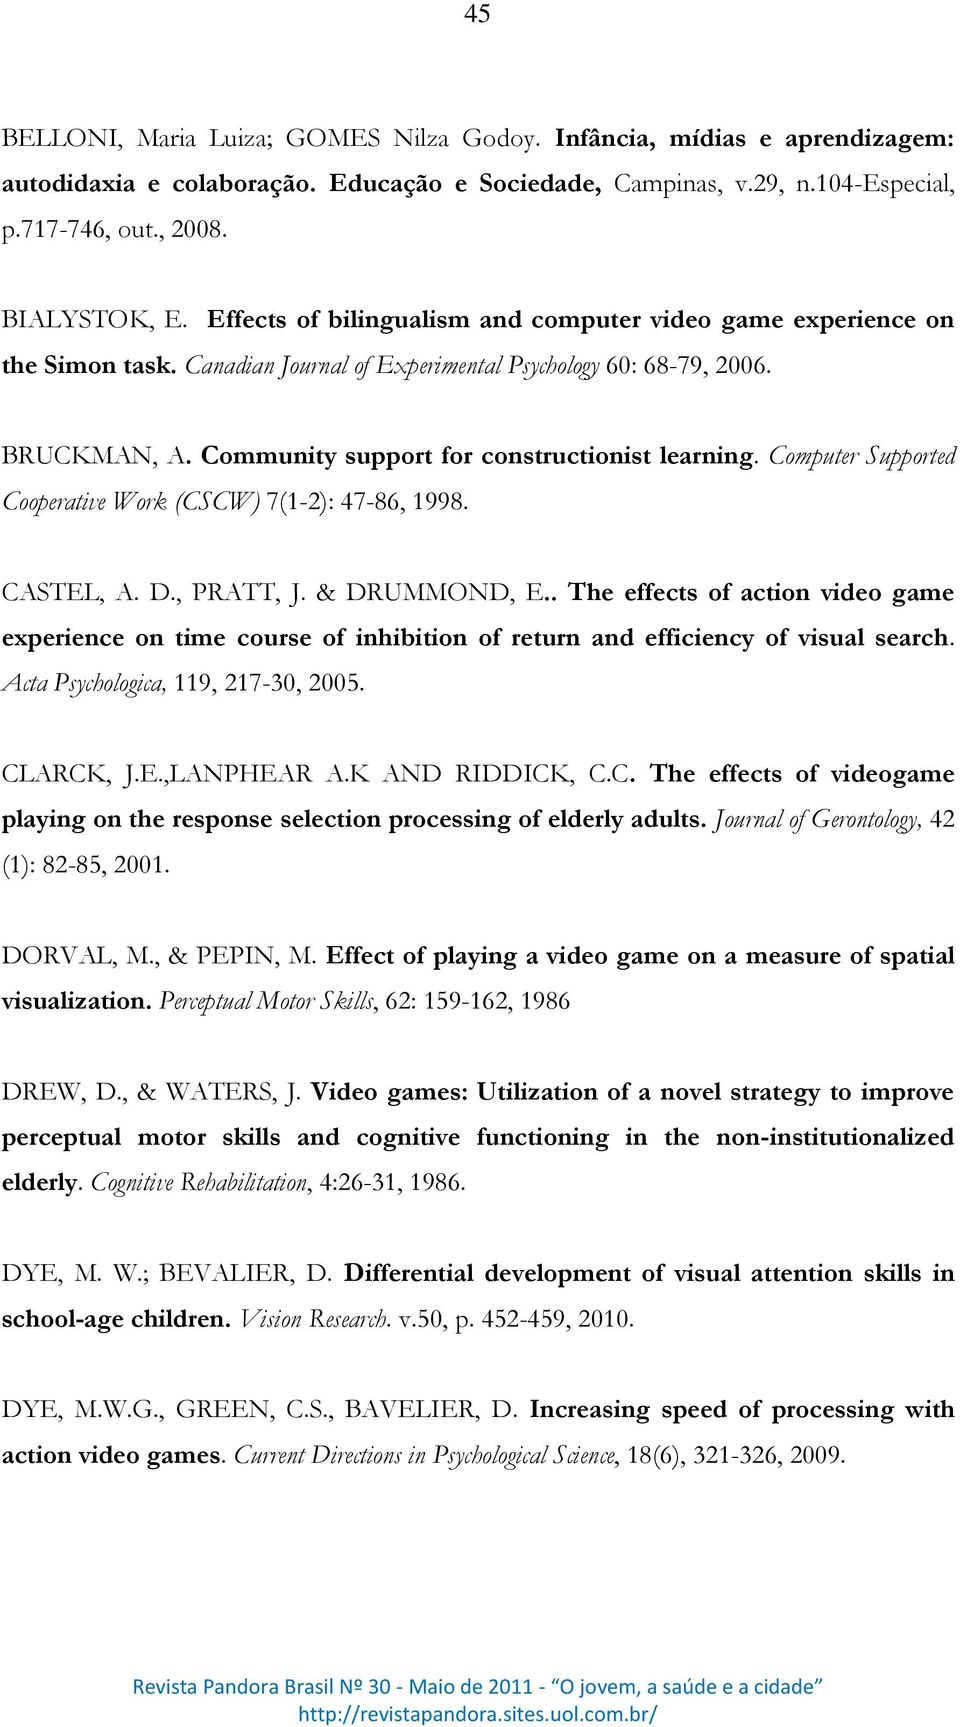 Computer Supported Cooperative Work (CSCW) 7(1-2): 47-86, 1998. CASTEL, A. D., PRATT, J. & DRUMMOND, E.